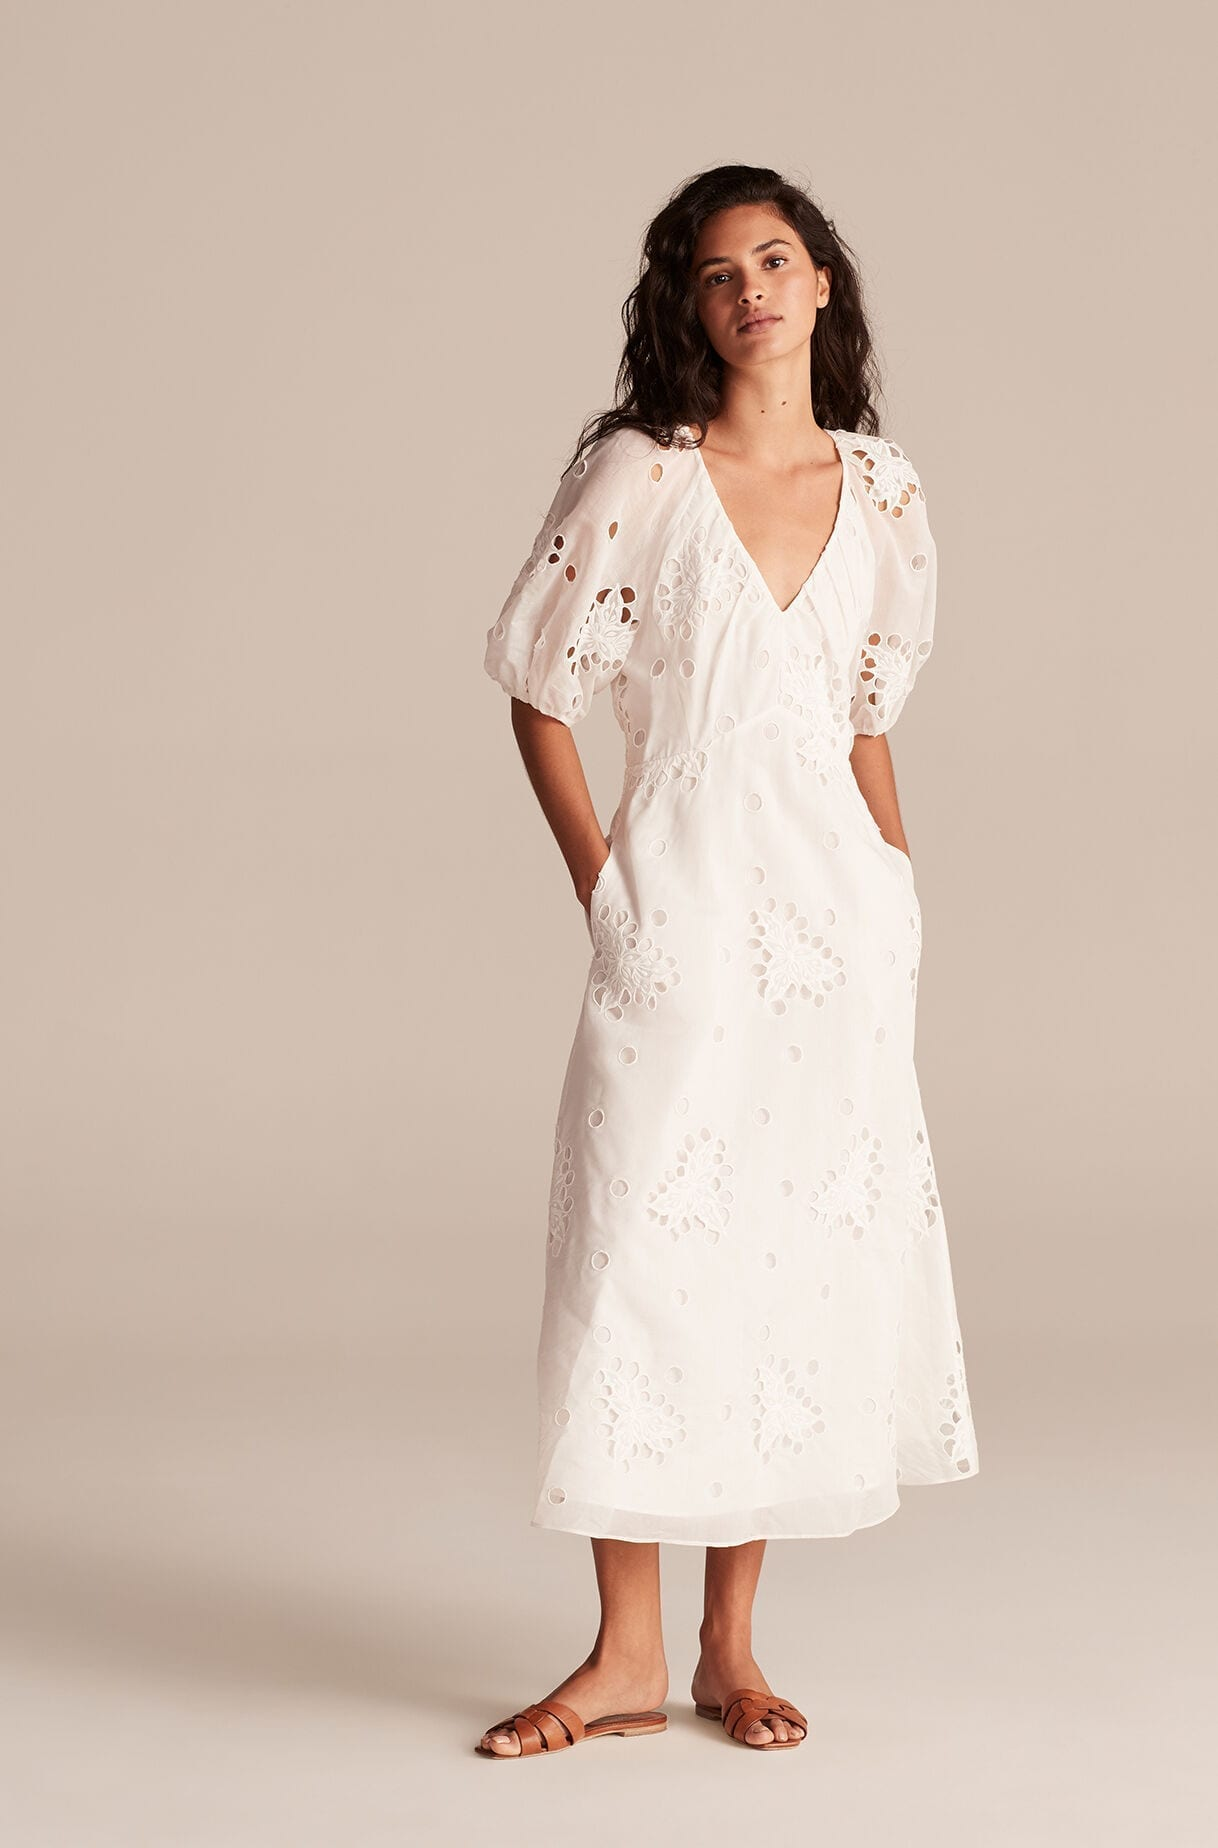 REBECCA TAYLOR Honeysuckle Eyelet Dress